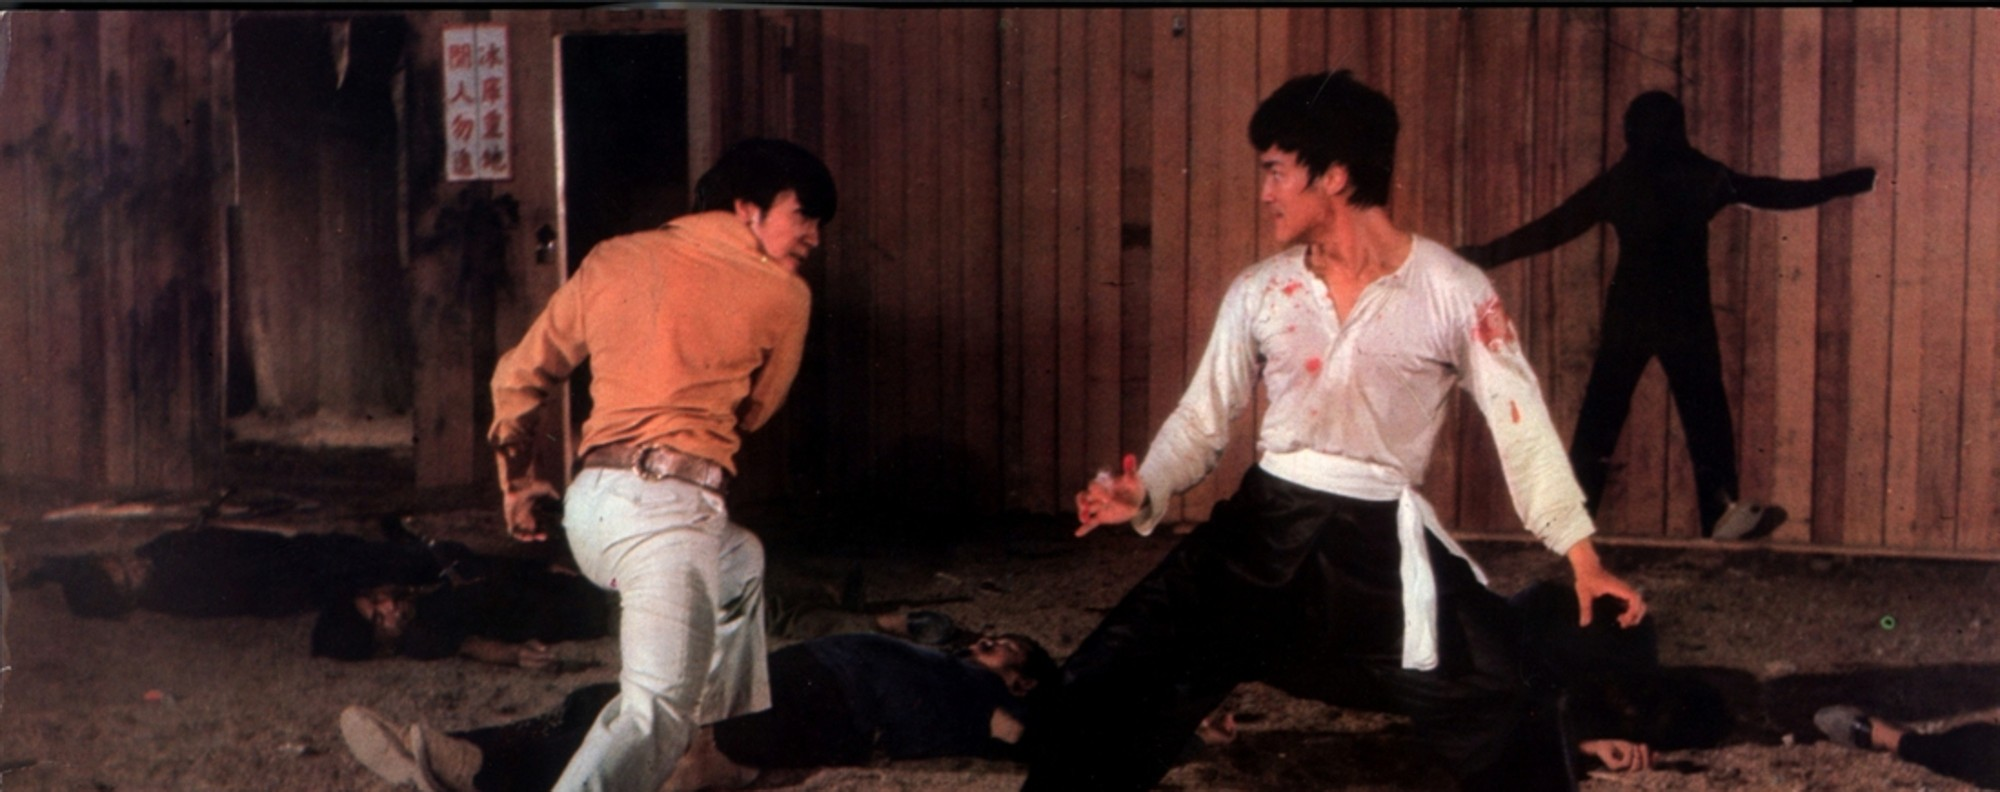 Bruce Lee (right) in The Big Boss (1971).